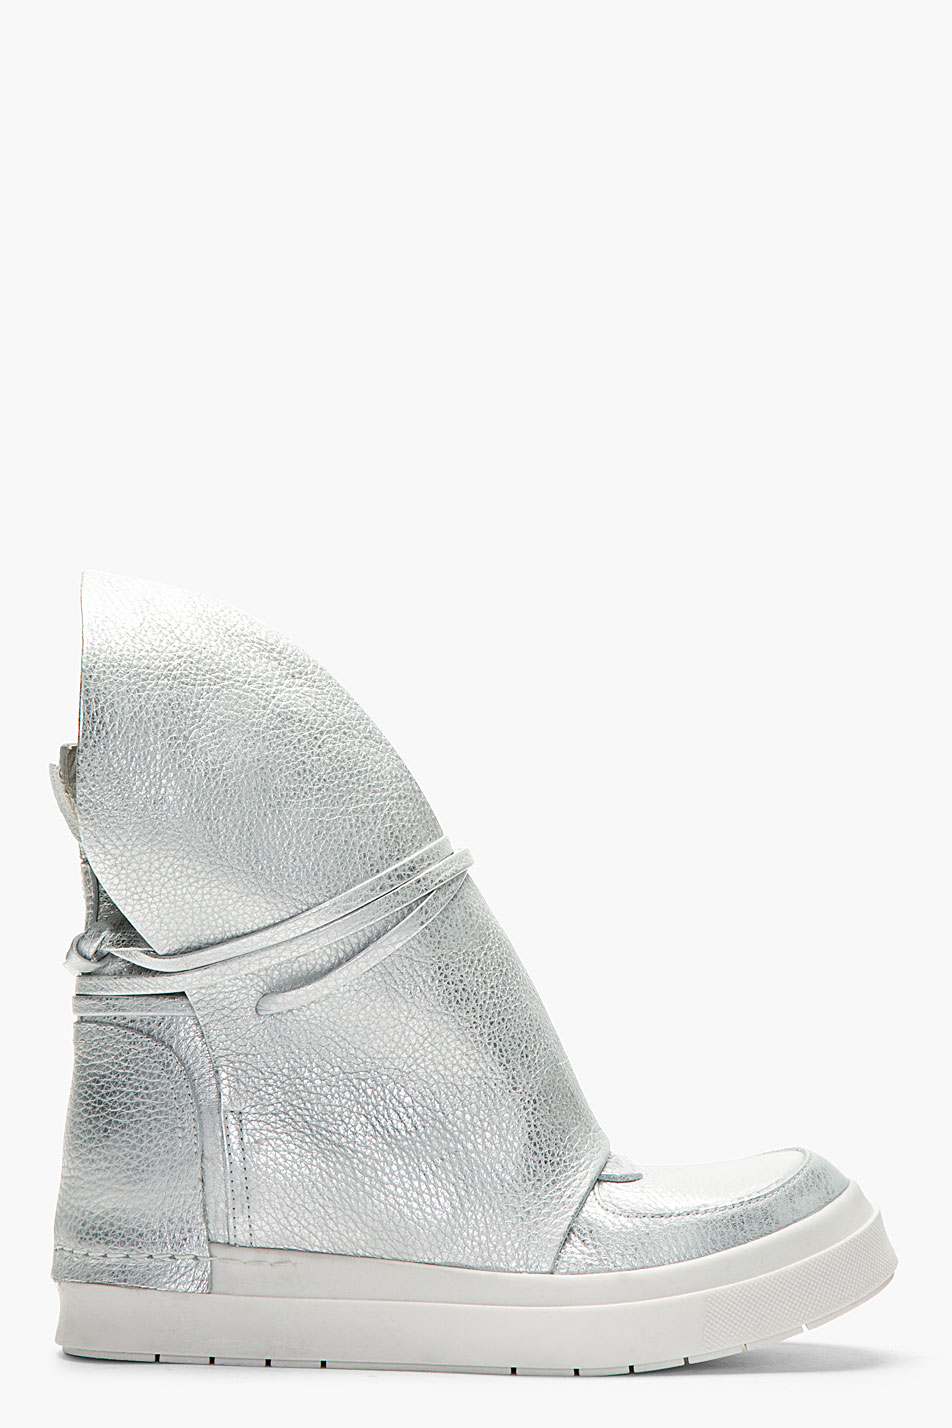 Ca by cinzia araia silver slouchy leather high_top wedge sneakers